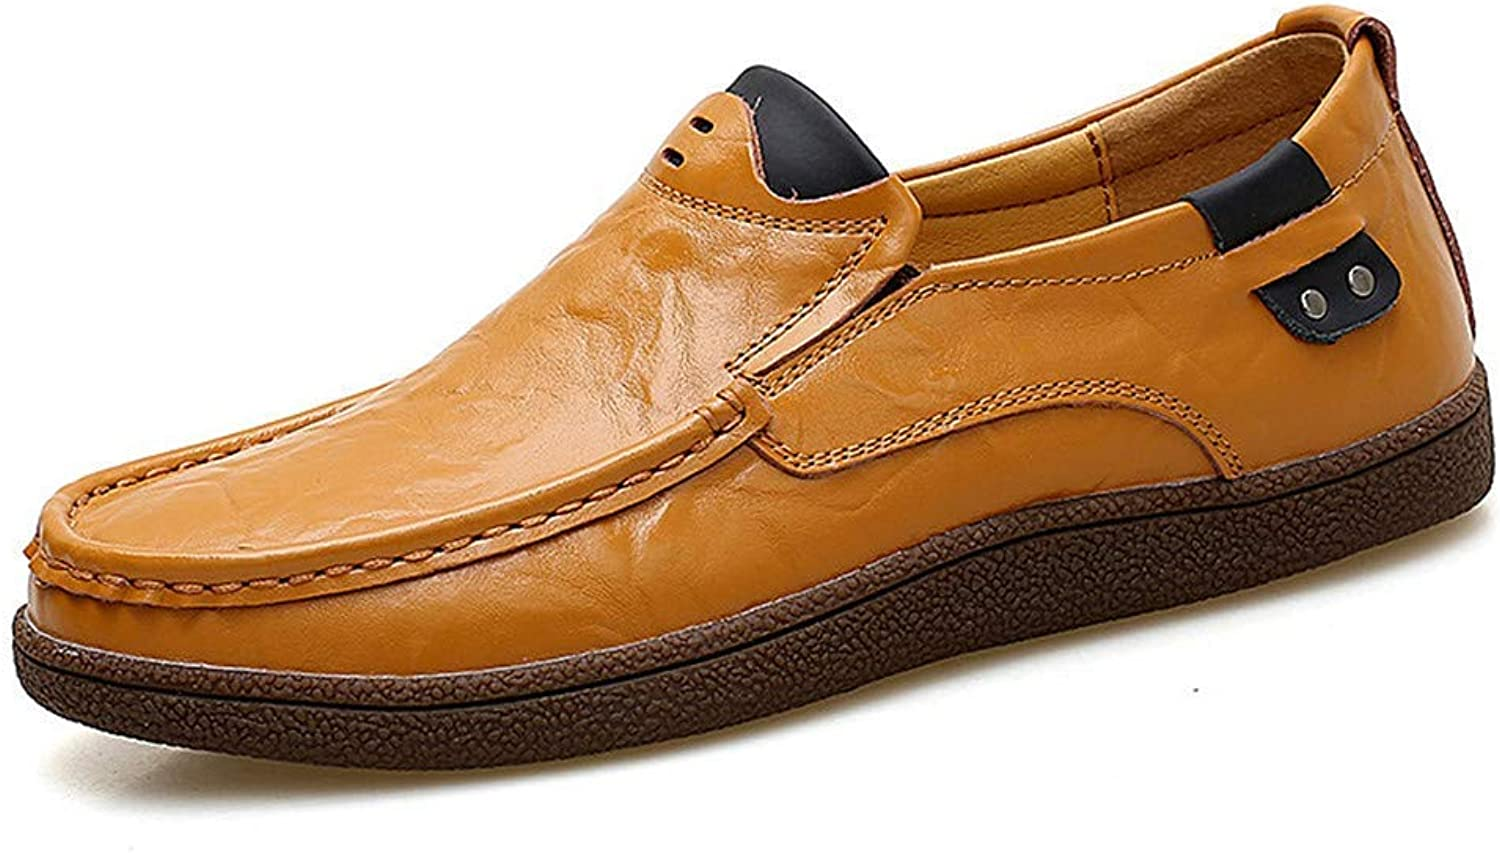 ZHRUI Men Loafers Flats Soft Leather Handmade Moccasins Sandals (color   Yellow Brown, Size   10=45 EU)